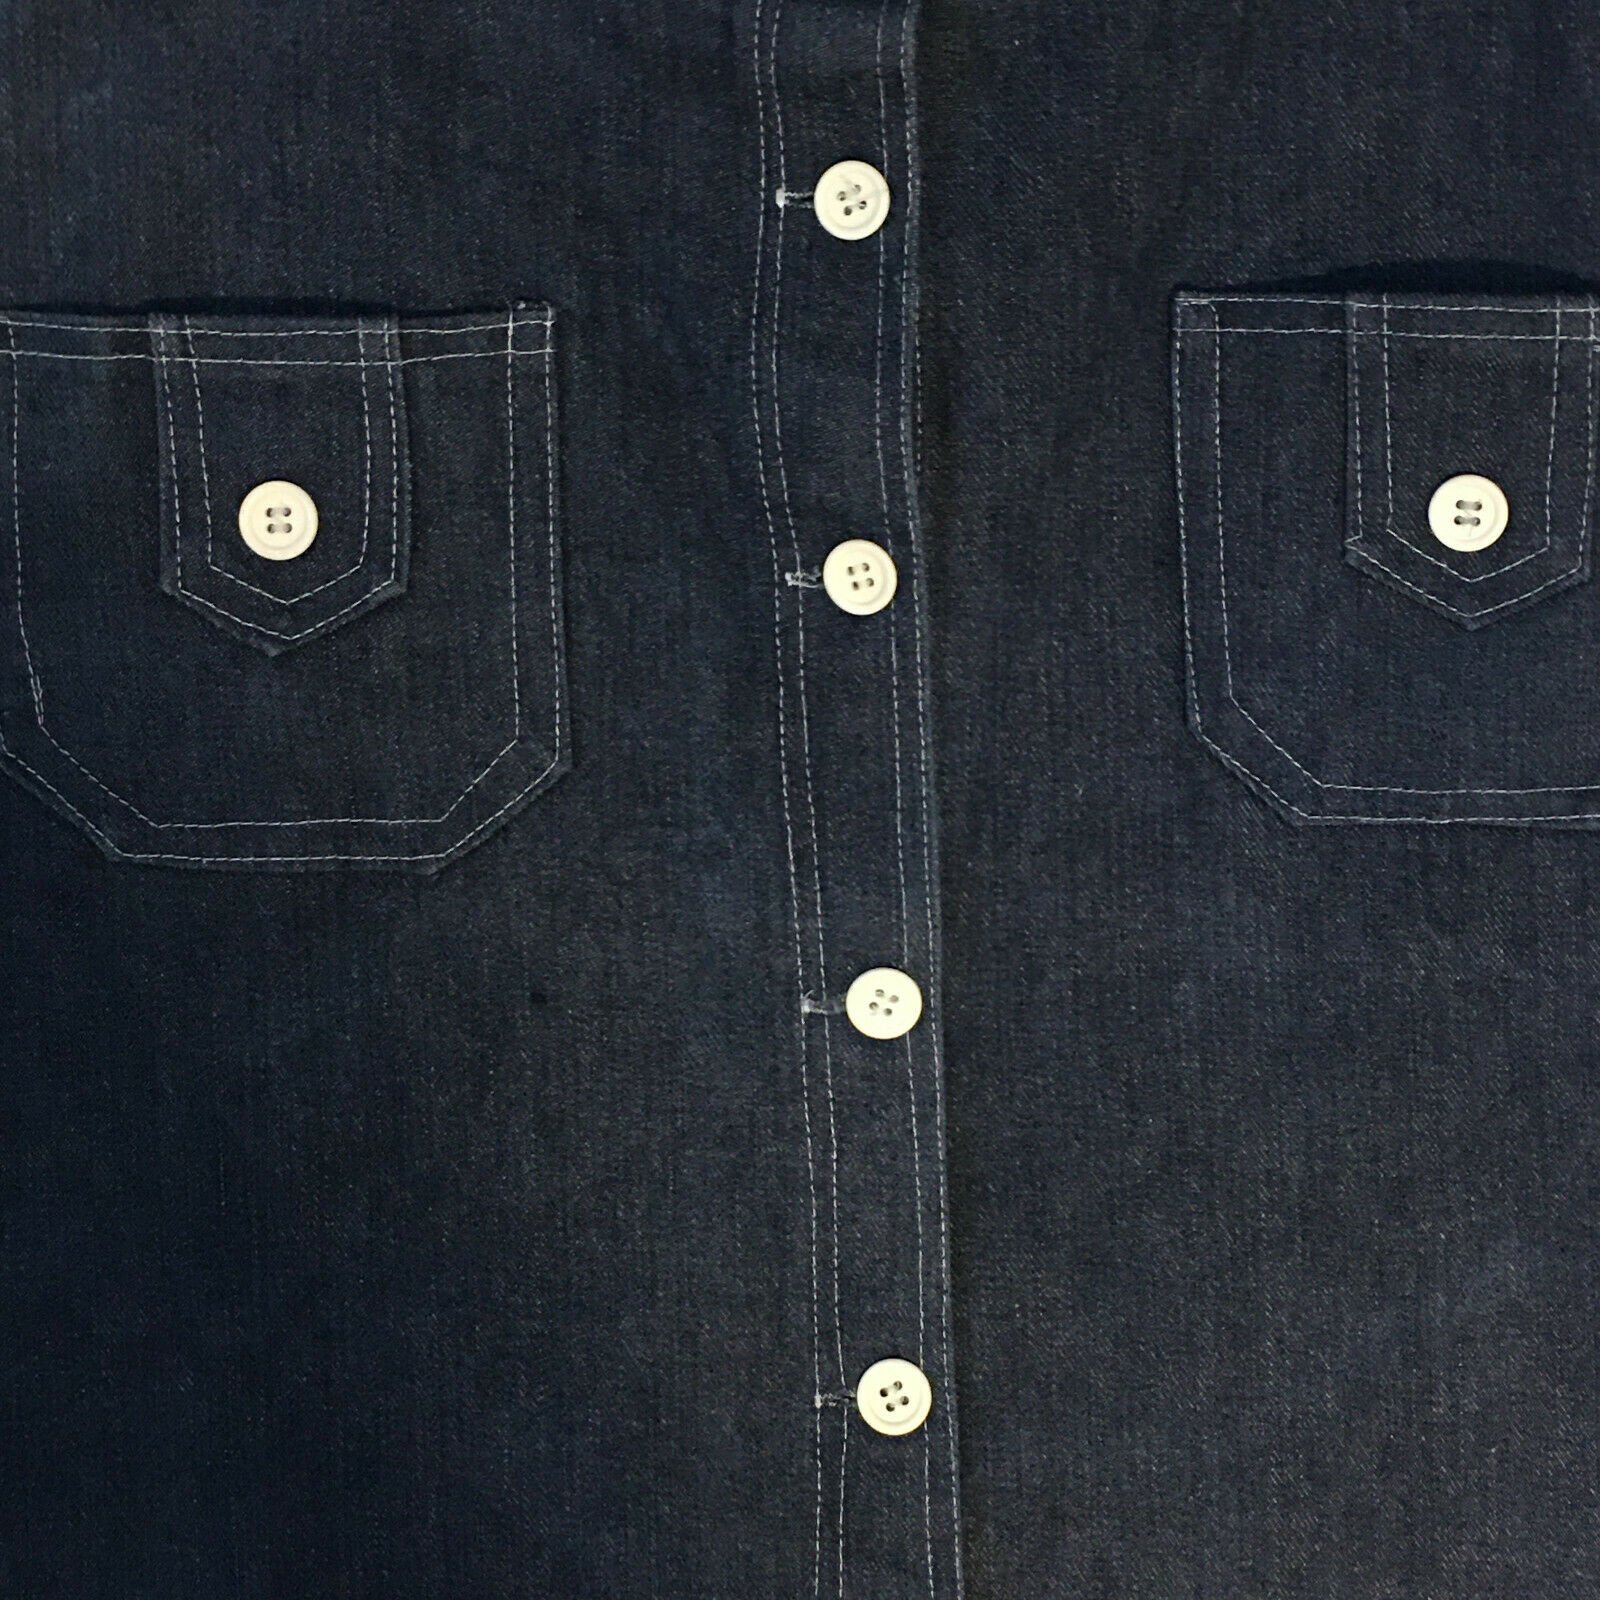 Peekaboo A-Line Vintage Inspired Denim Button Fro… - image 3